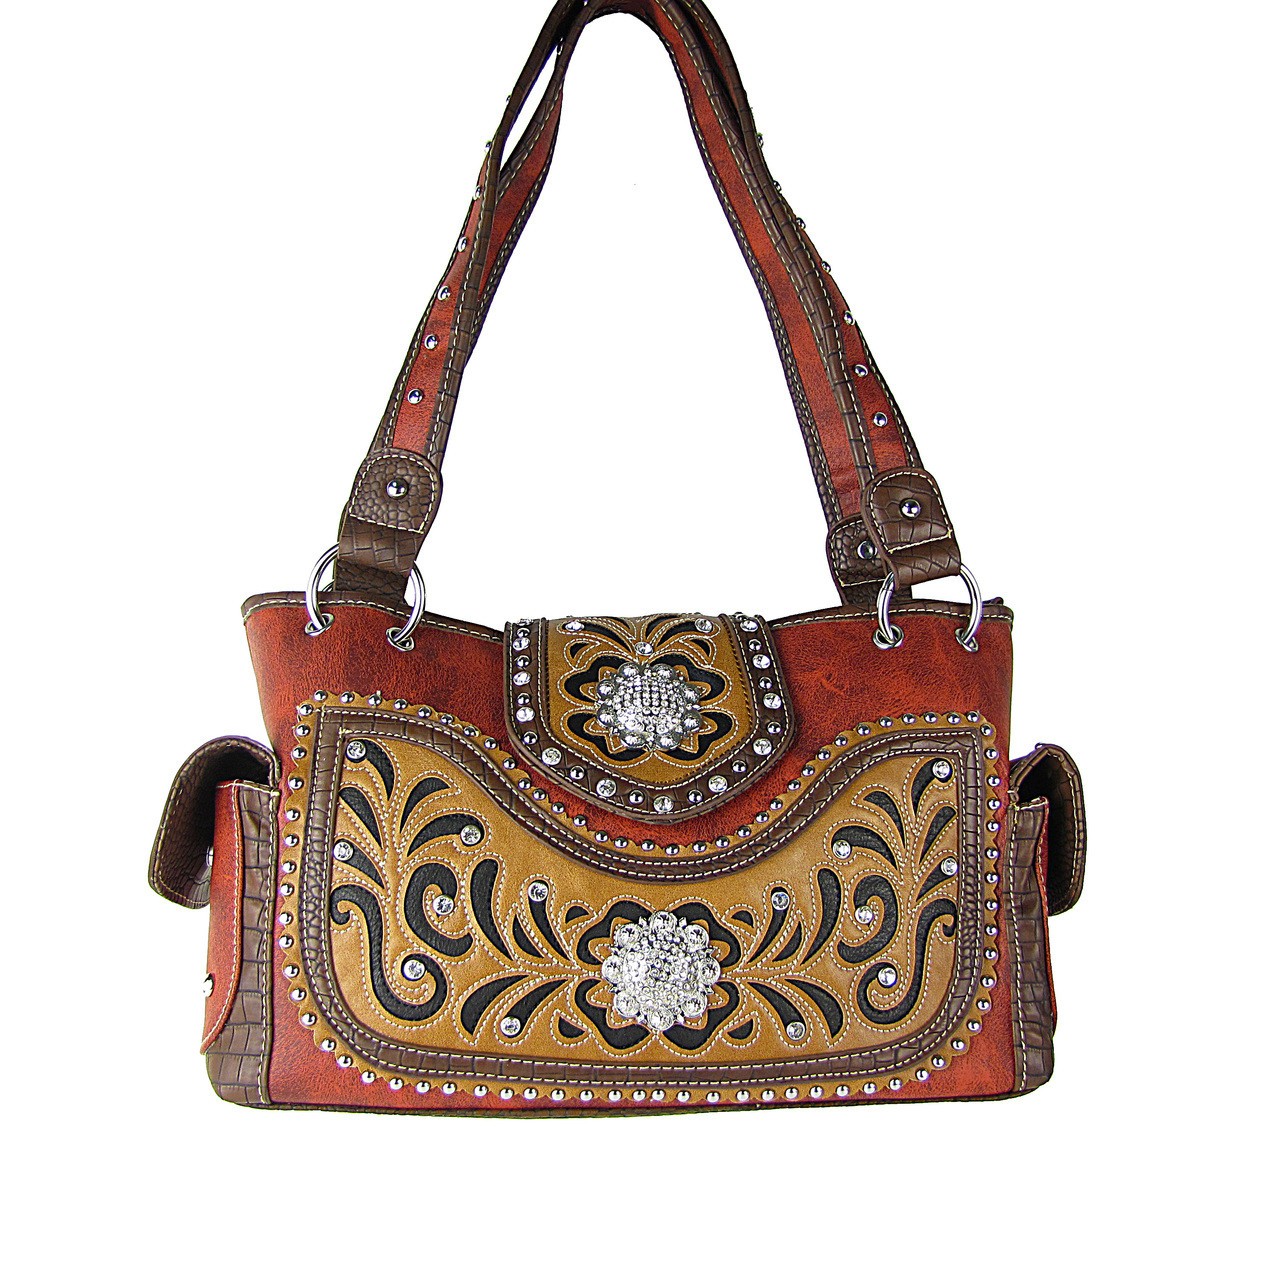 RED WESTERN STUDDED FLOWER RHINESTONE LOOK SHOULDER HANDBAG HB1-CHF0042RED